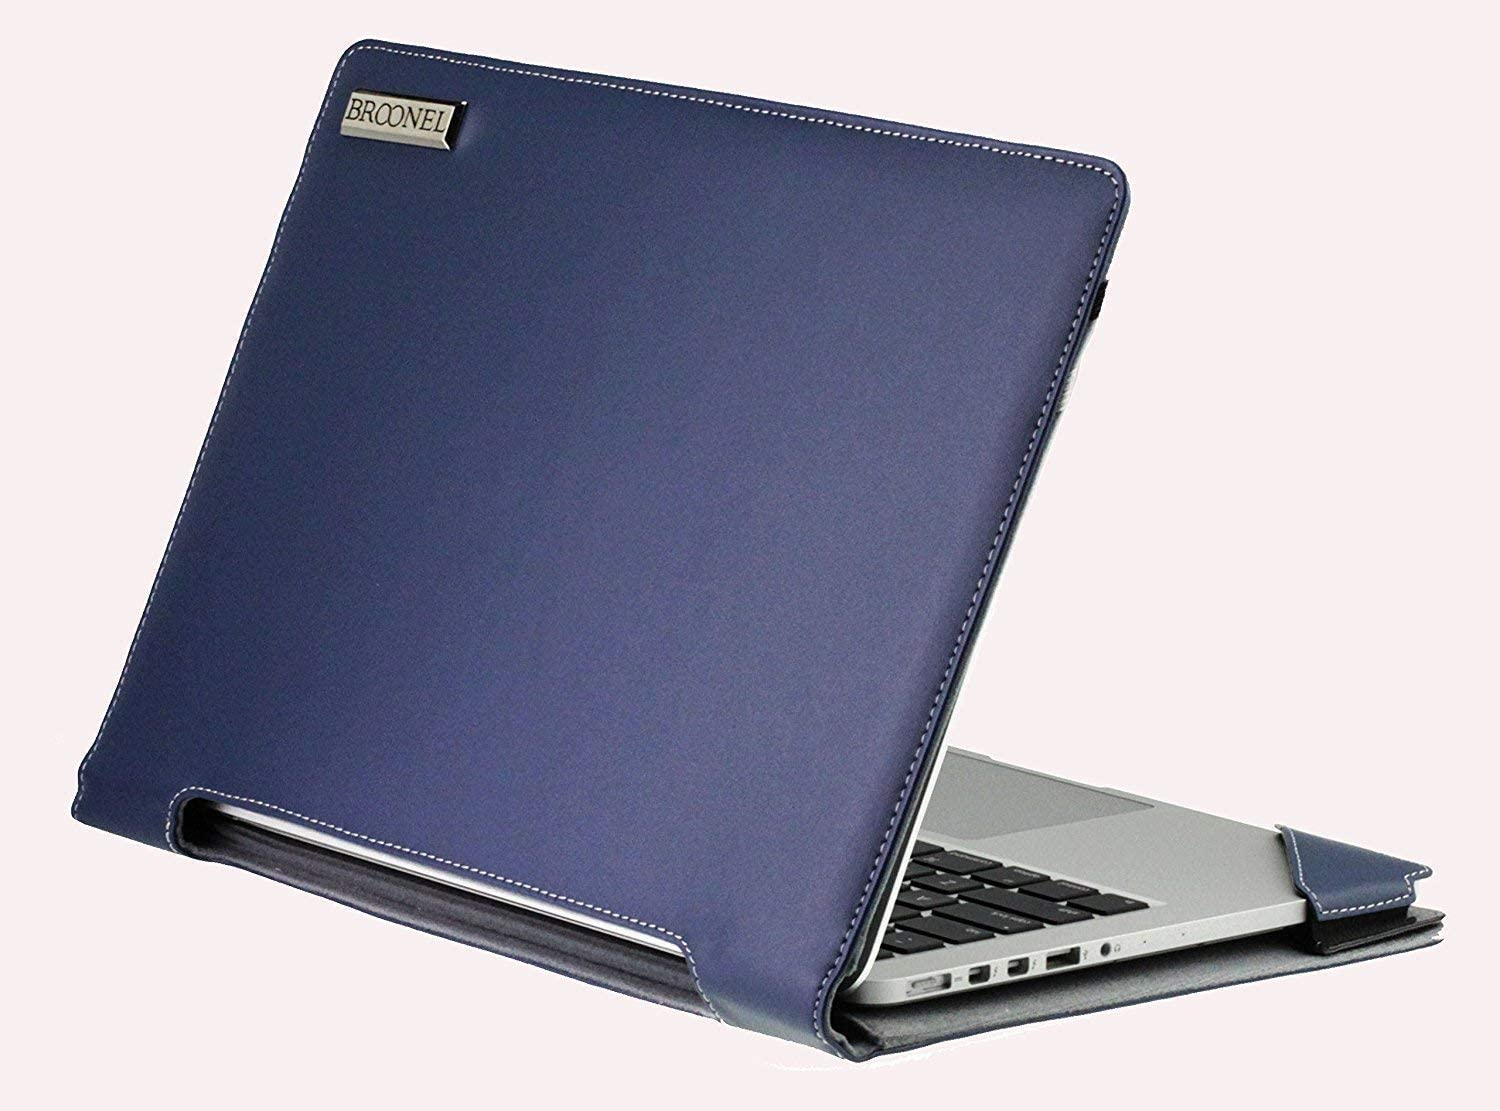 Profile Series Broonel Blue Leather Laptop Case Compatible with The Lenovo Ideapad S340 15.6 Inch